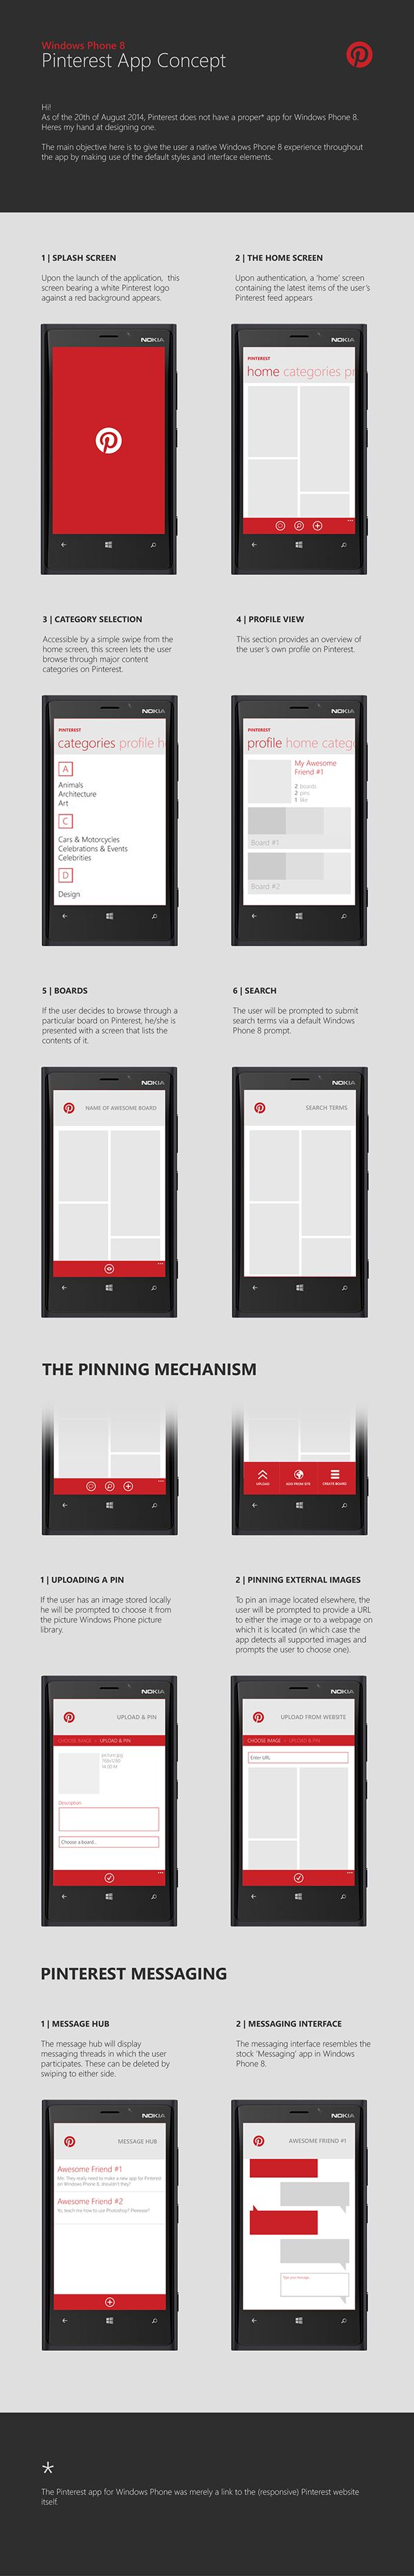 Pinterest App Concept for Windows Phone 8 on Behance